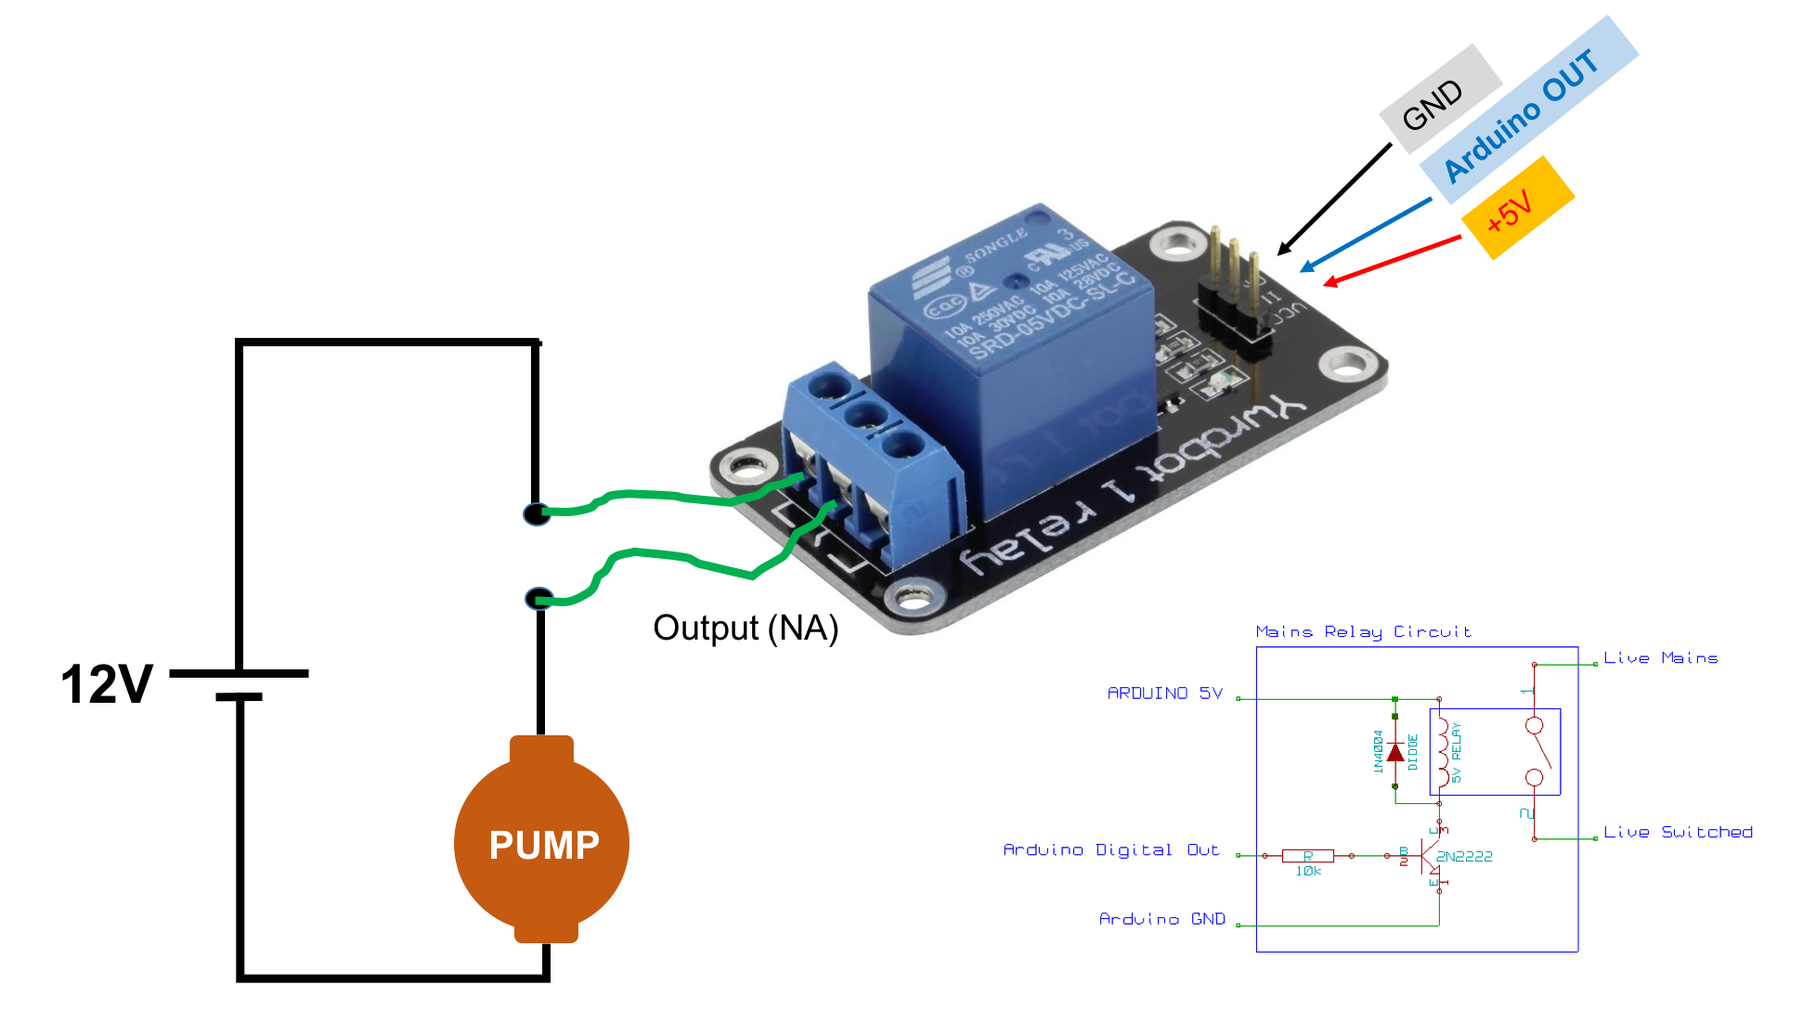 Actuators and Buttons for Local Control